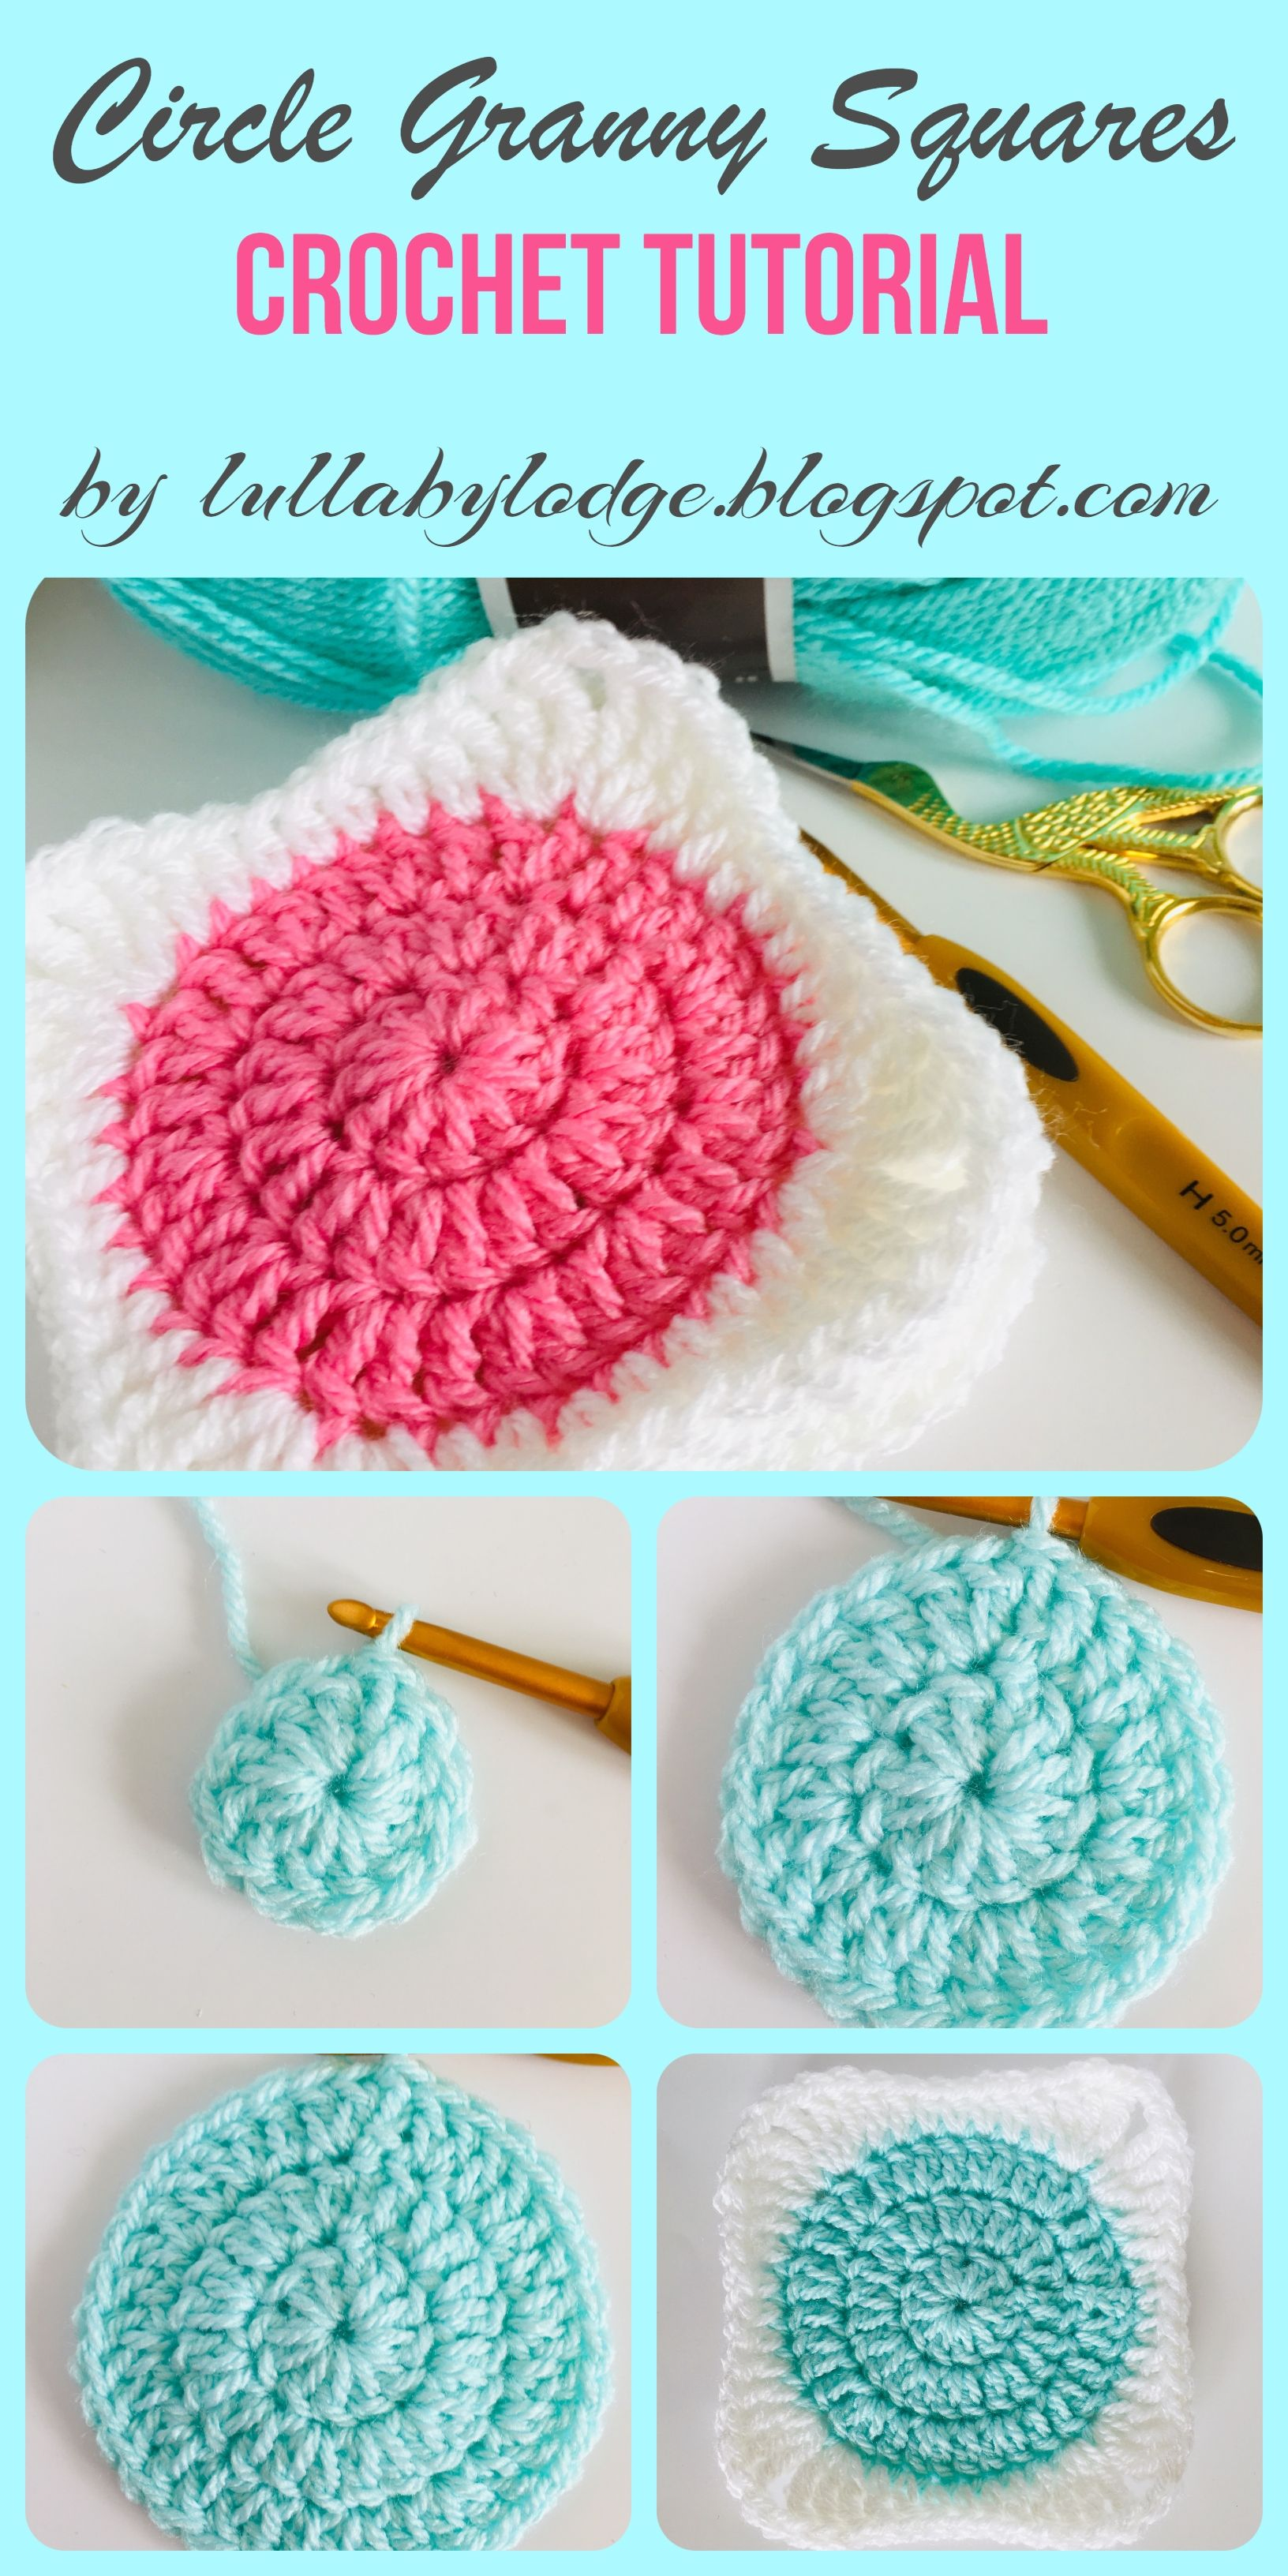 How To Turn Your Circles Into Granny Squares Crochet Tutorial By Lullaby Lodge Quilting For Beginners Crochet Tutorial Crochet Circles